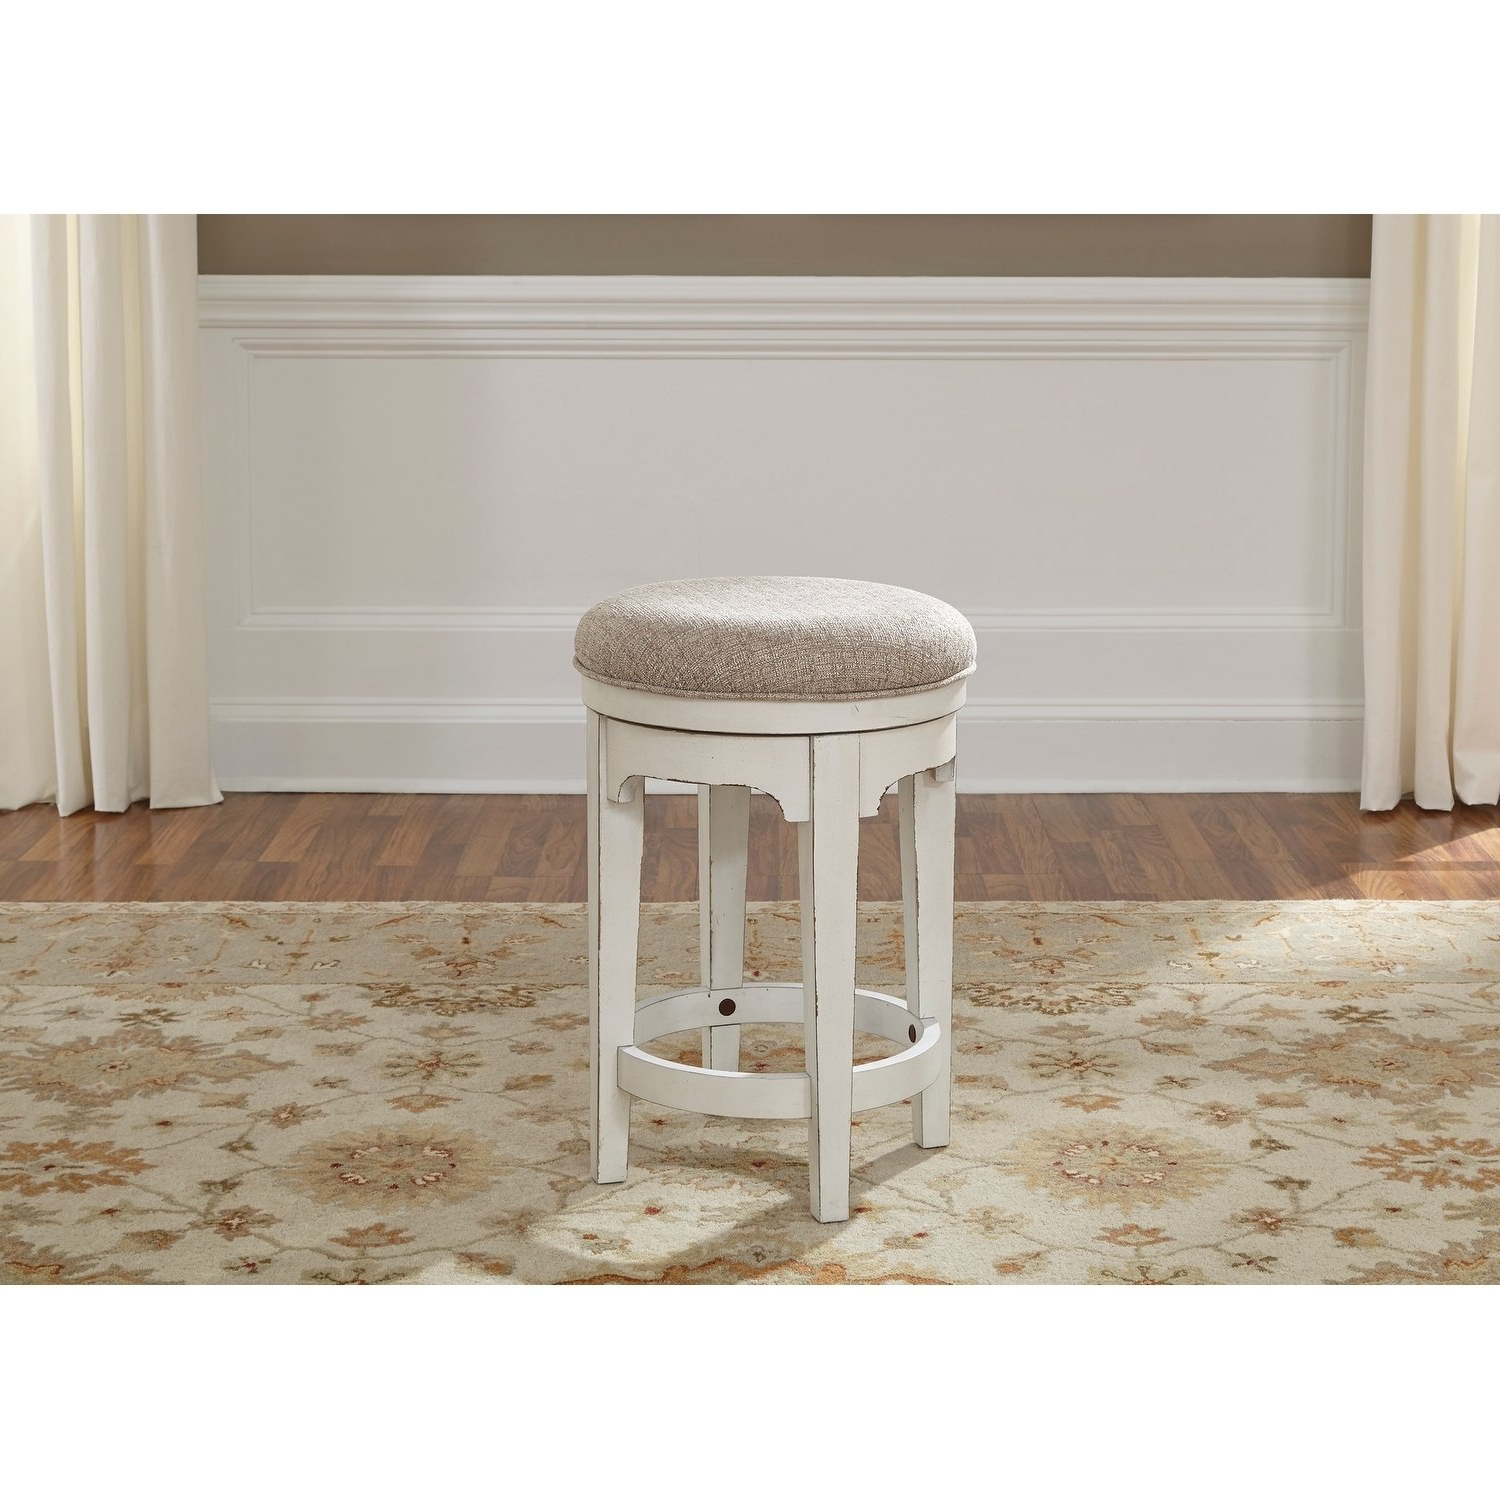 Most Recent Shop Magnolia Manor Antique White Console Swivel Stool – Free With Regard To Manor Grey Swivel Chairs (View 17 of 20)